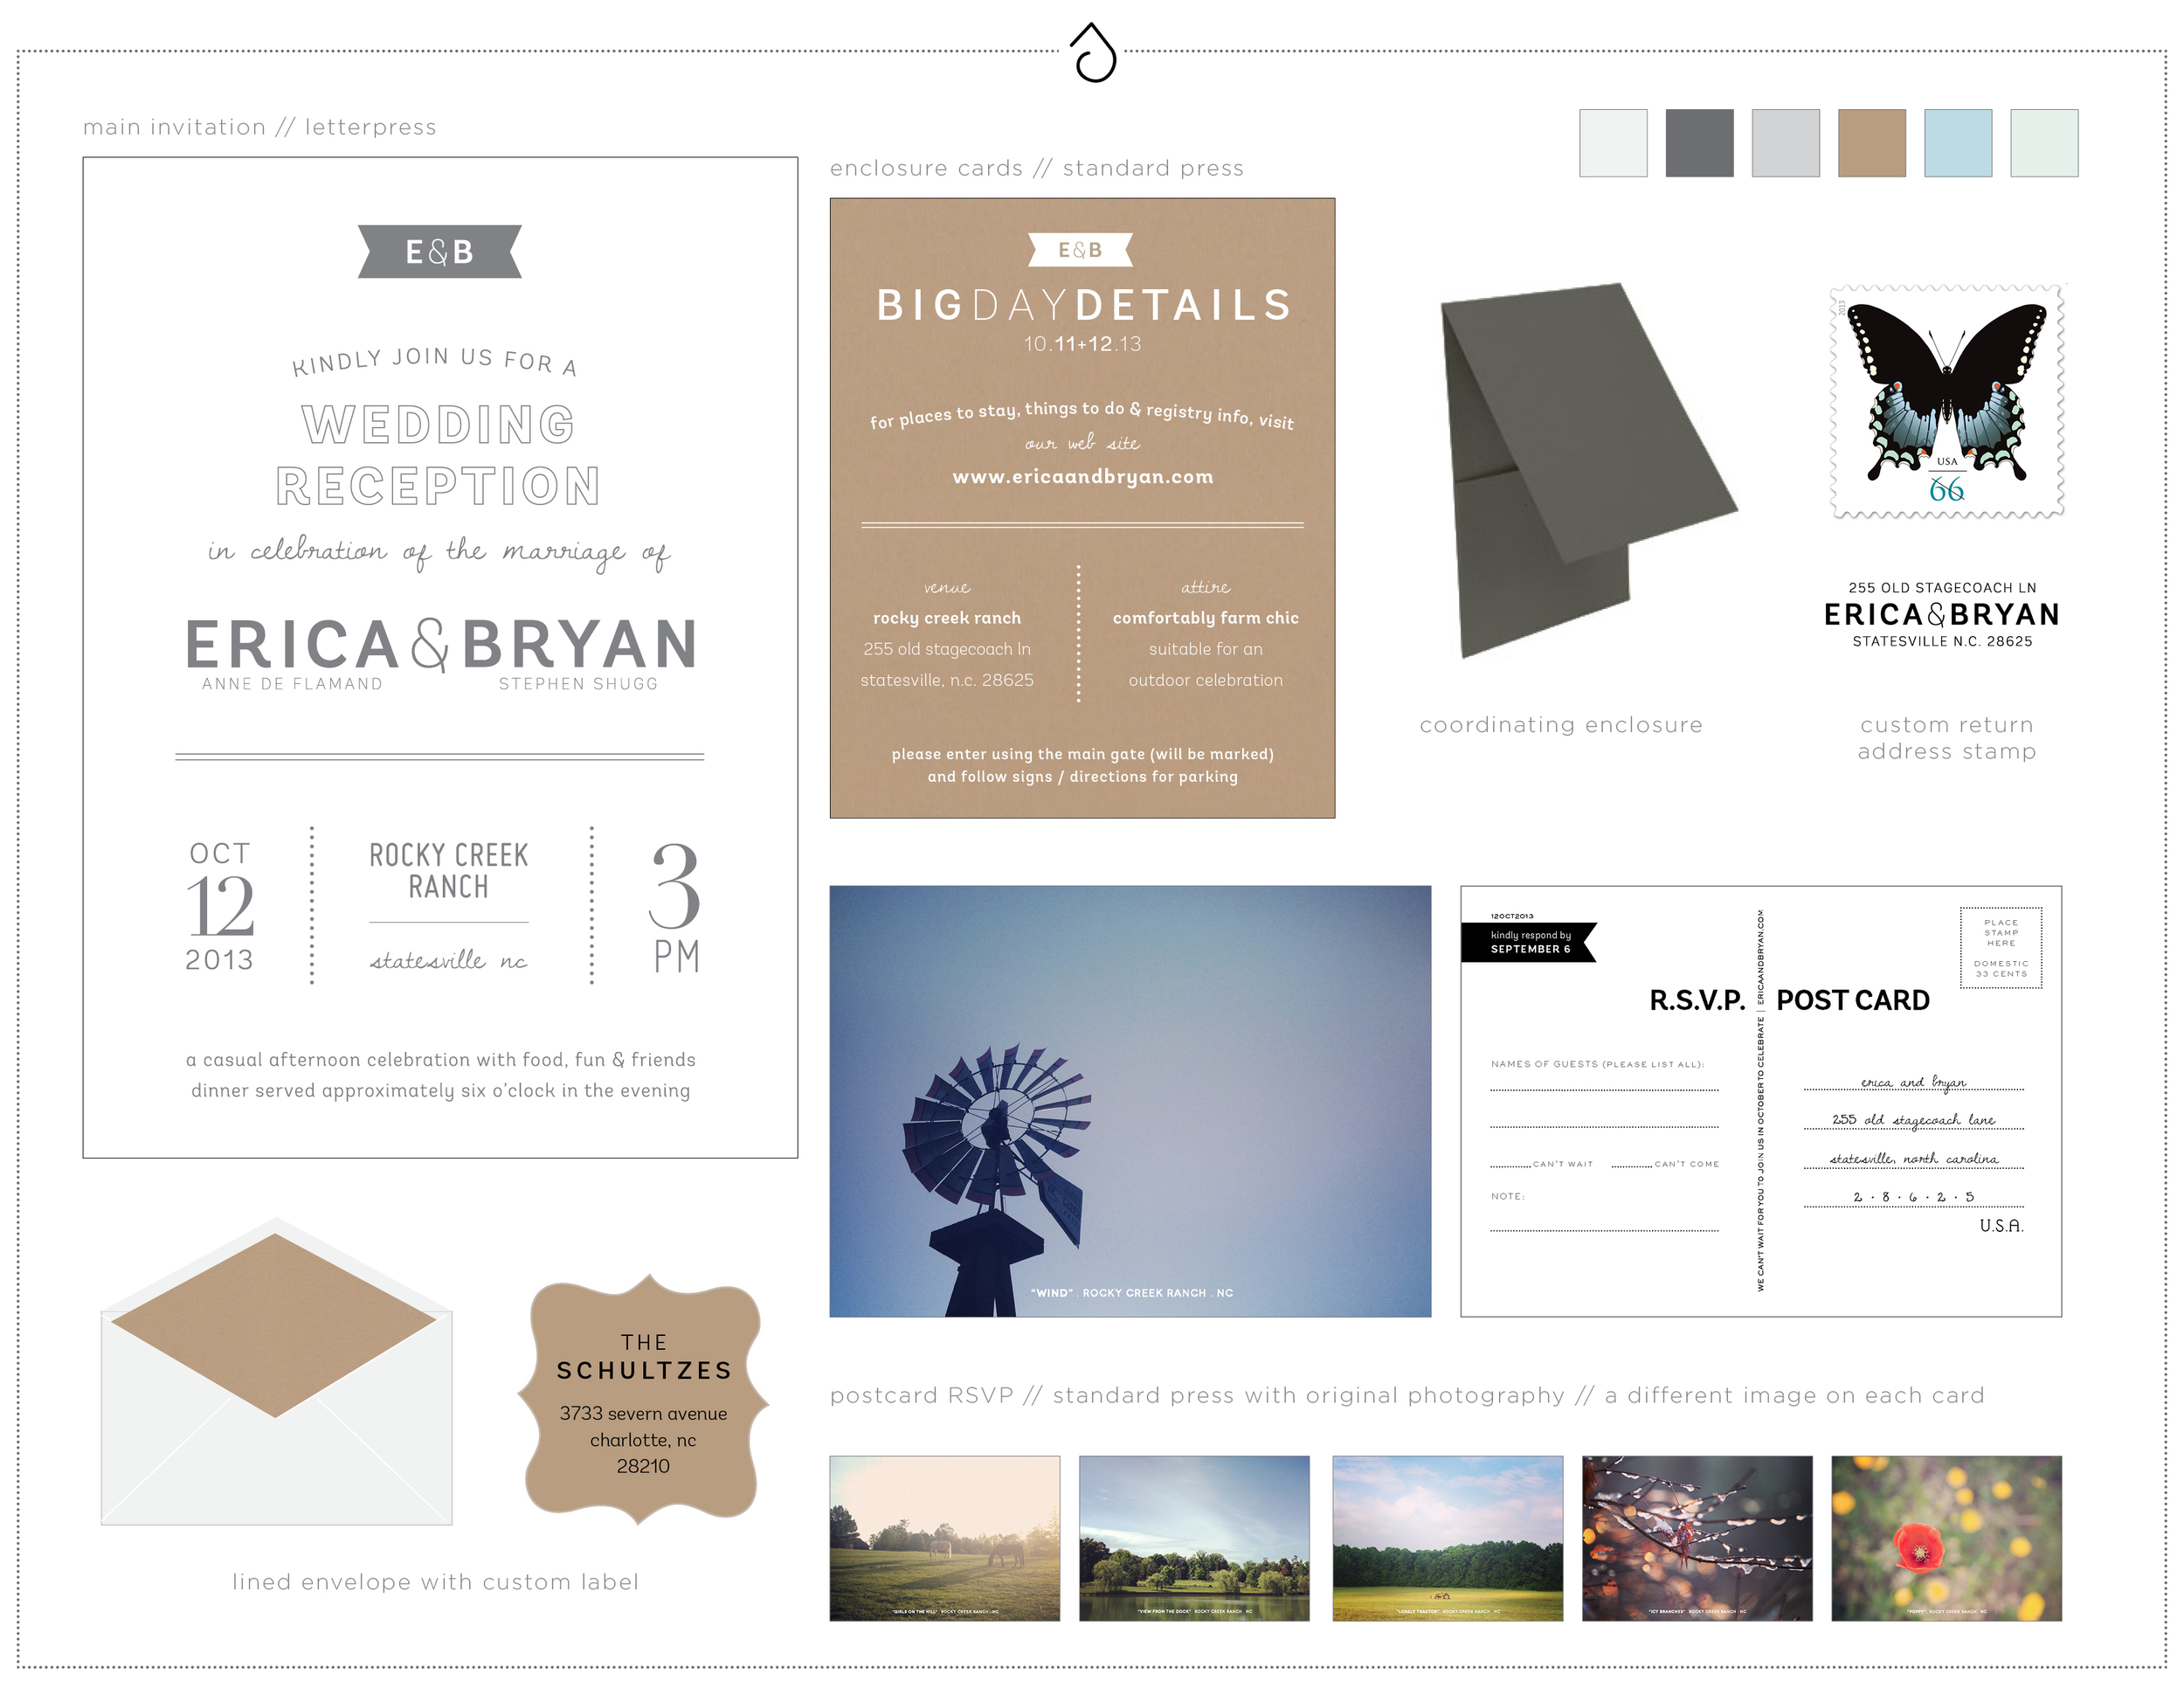 Design preview for Erica + Bryan's main invitation in their suite-hearts package.